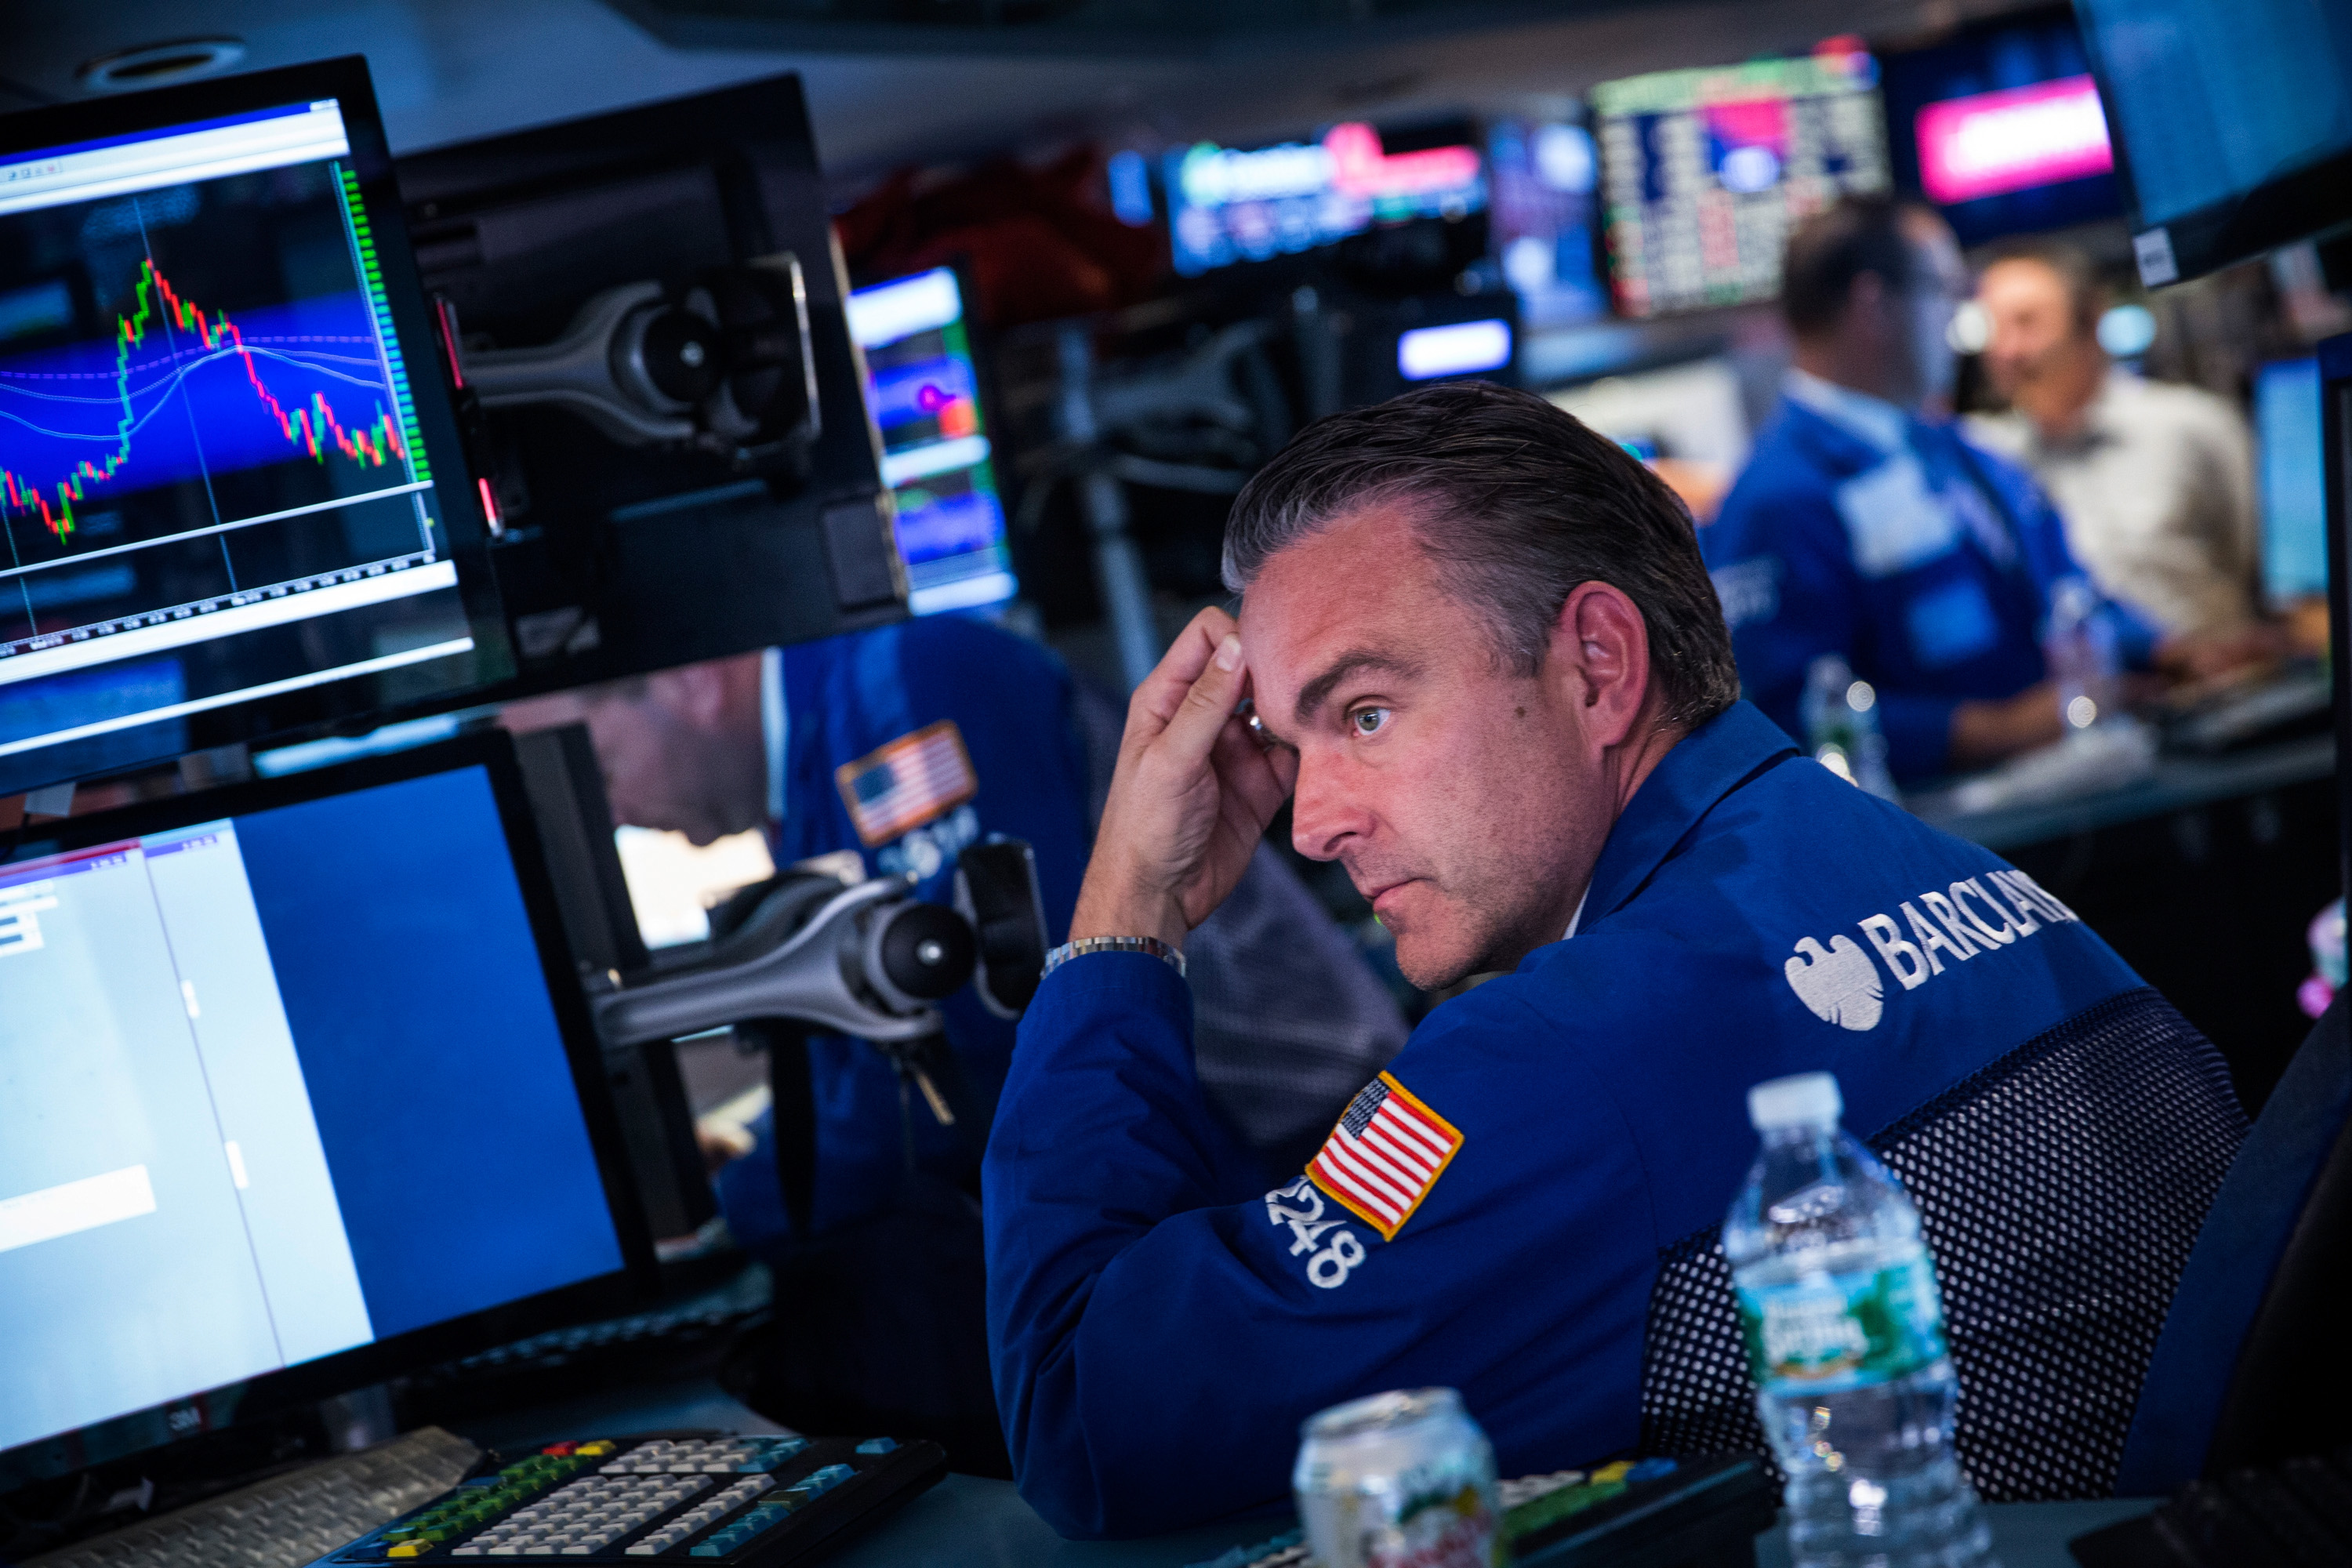 A trader works on the floor of the New York Stock Exchange during afternoon trading on Oct. 9, 2014 in New York City.